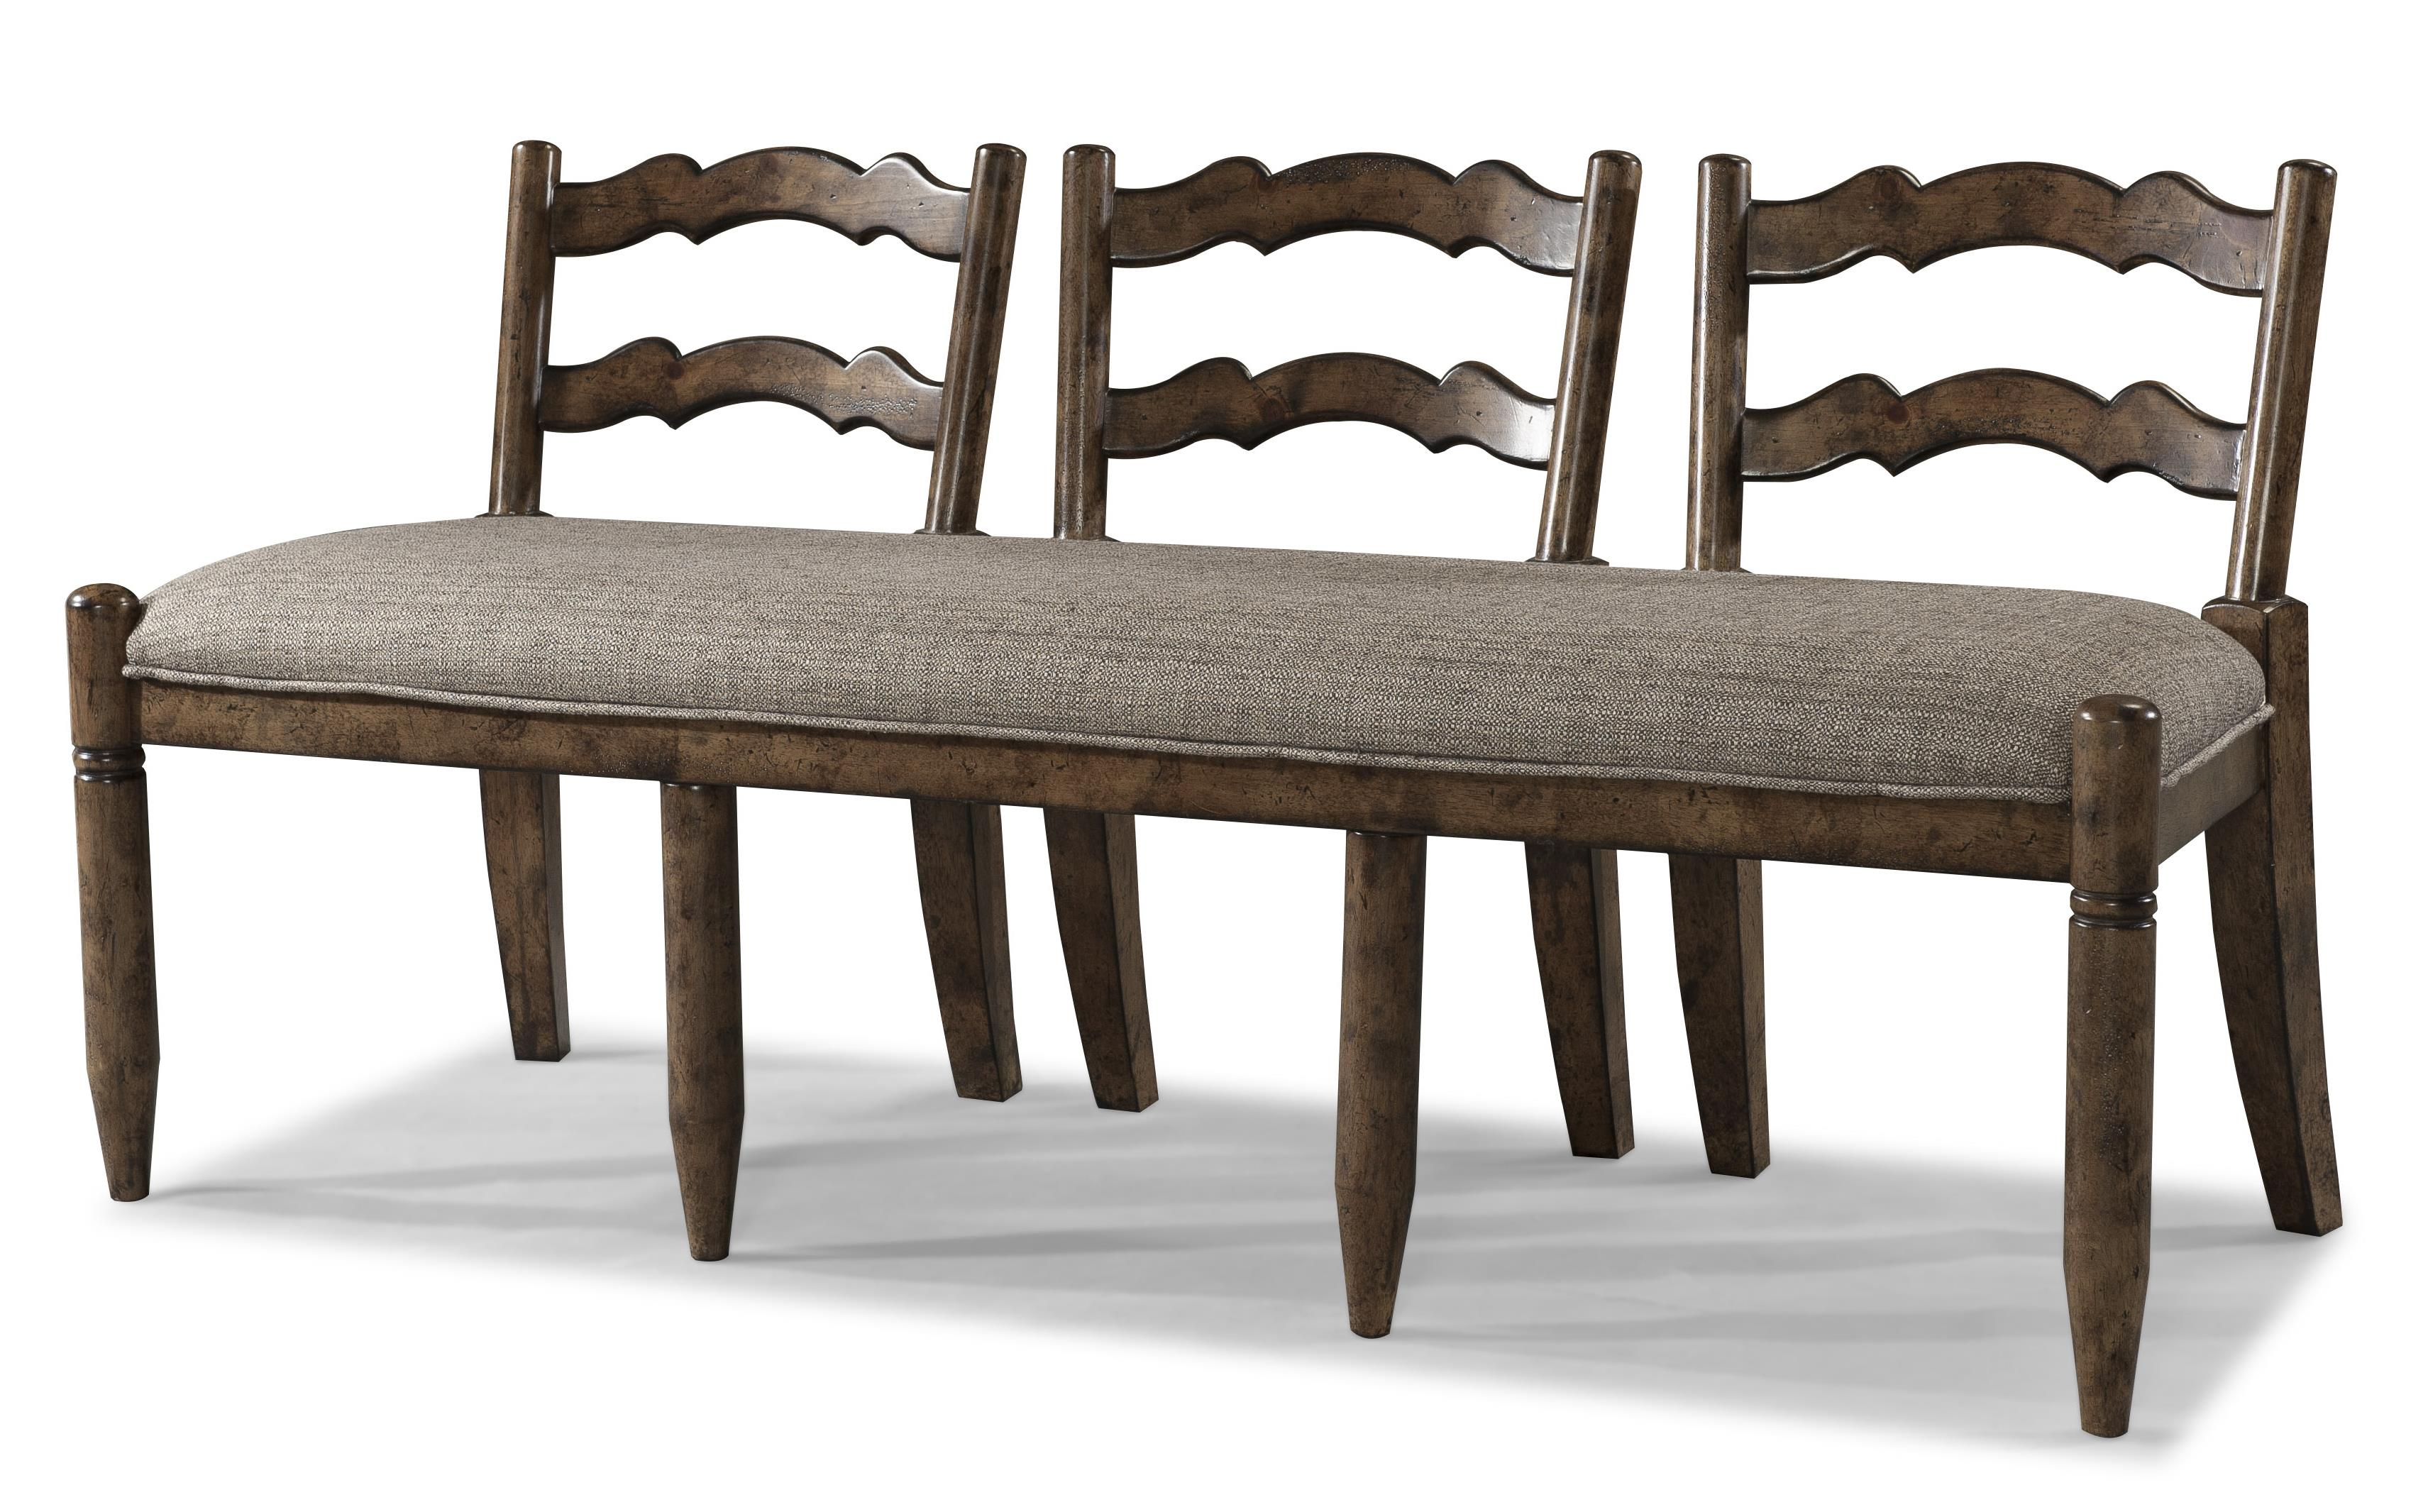 Easton Collection Farmhouse Ladderback Dining Bench - Item Number: 436-824 BENCH